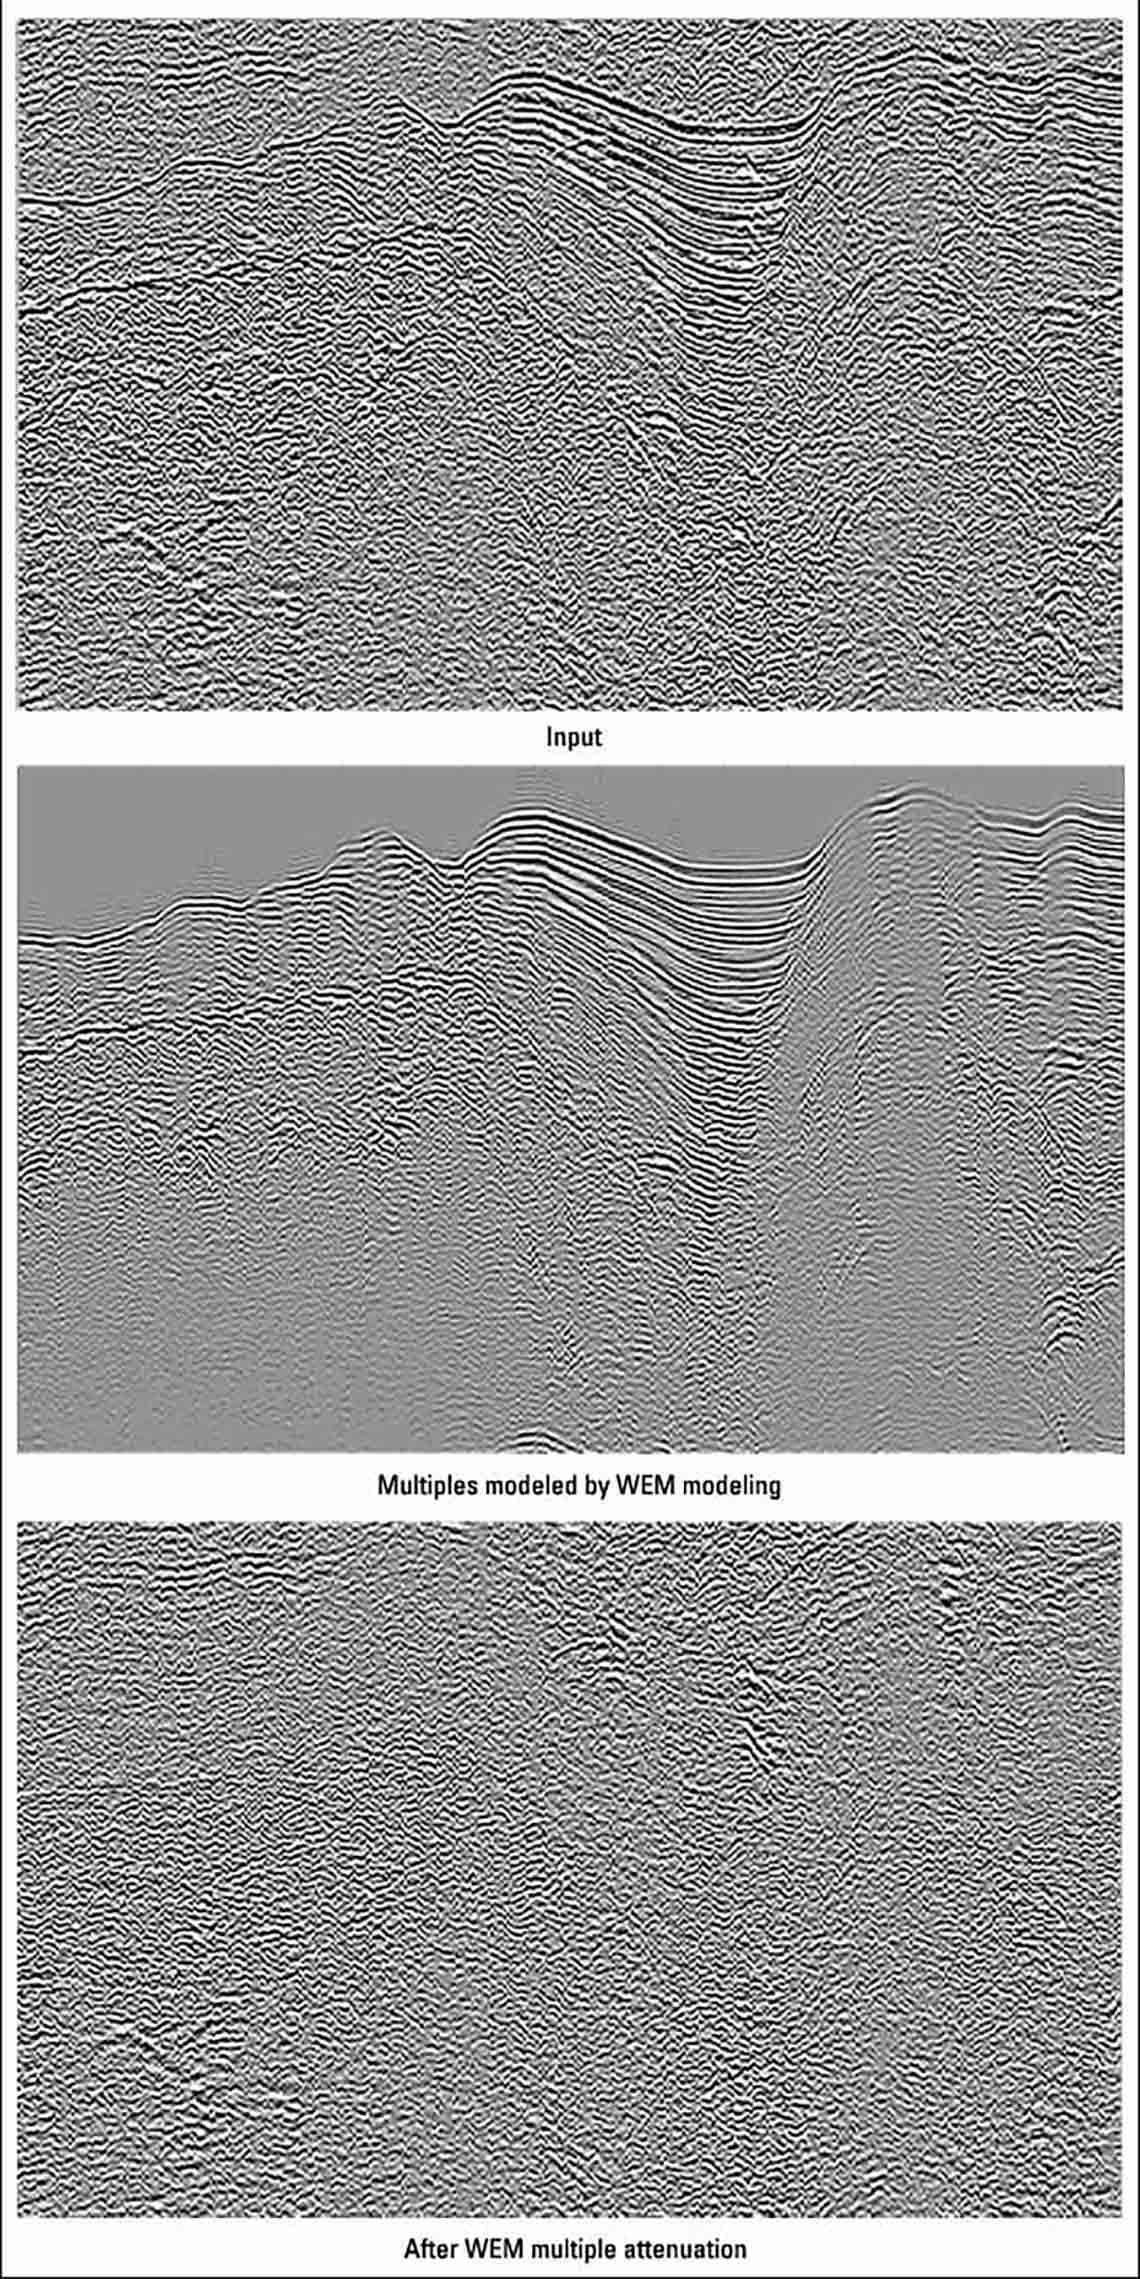 Examples where multiple energy has been accurately modeled by WEM modeling resulting in a clearer image.